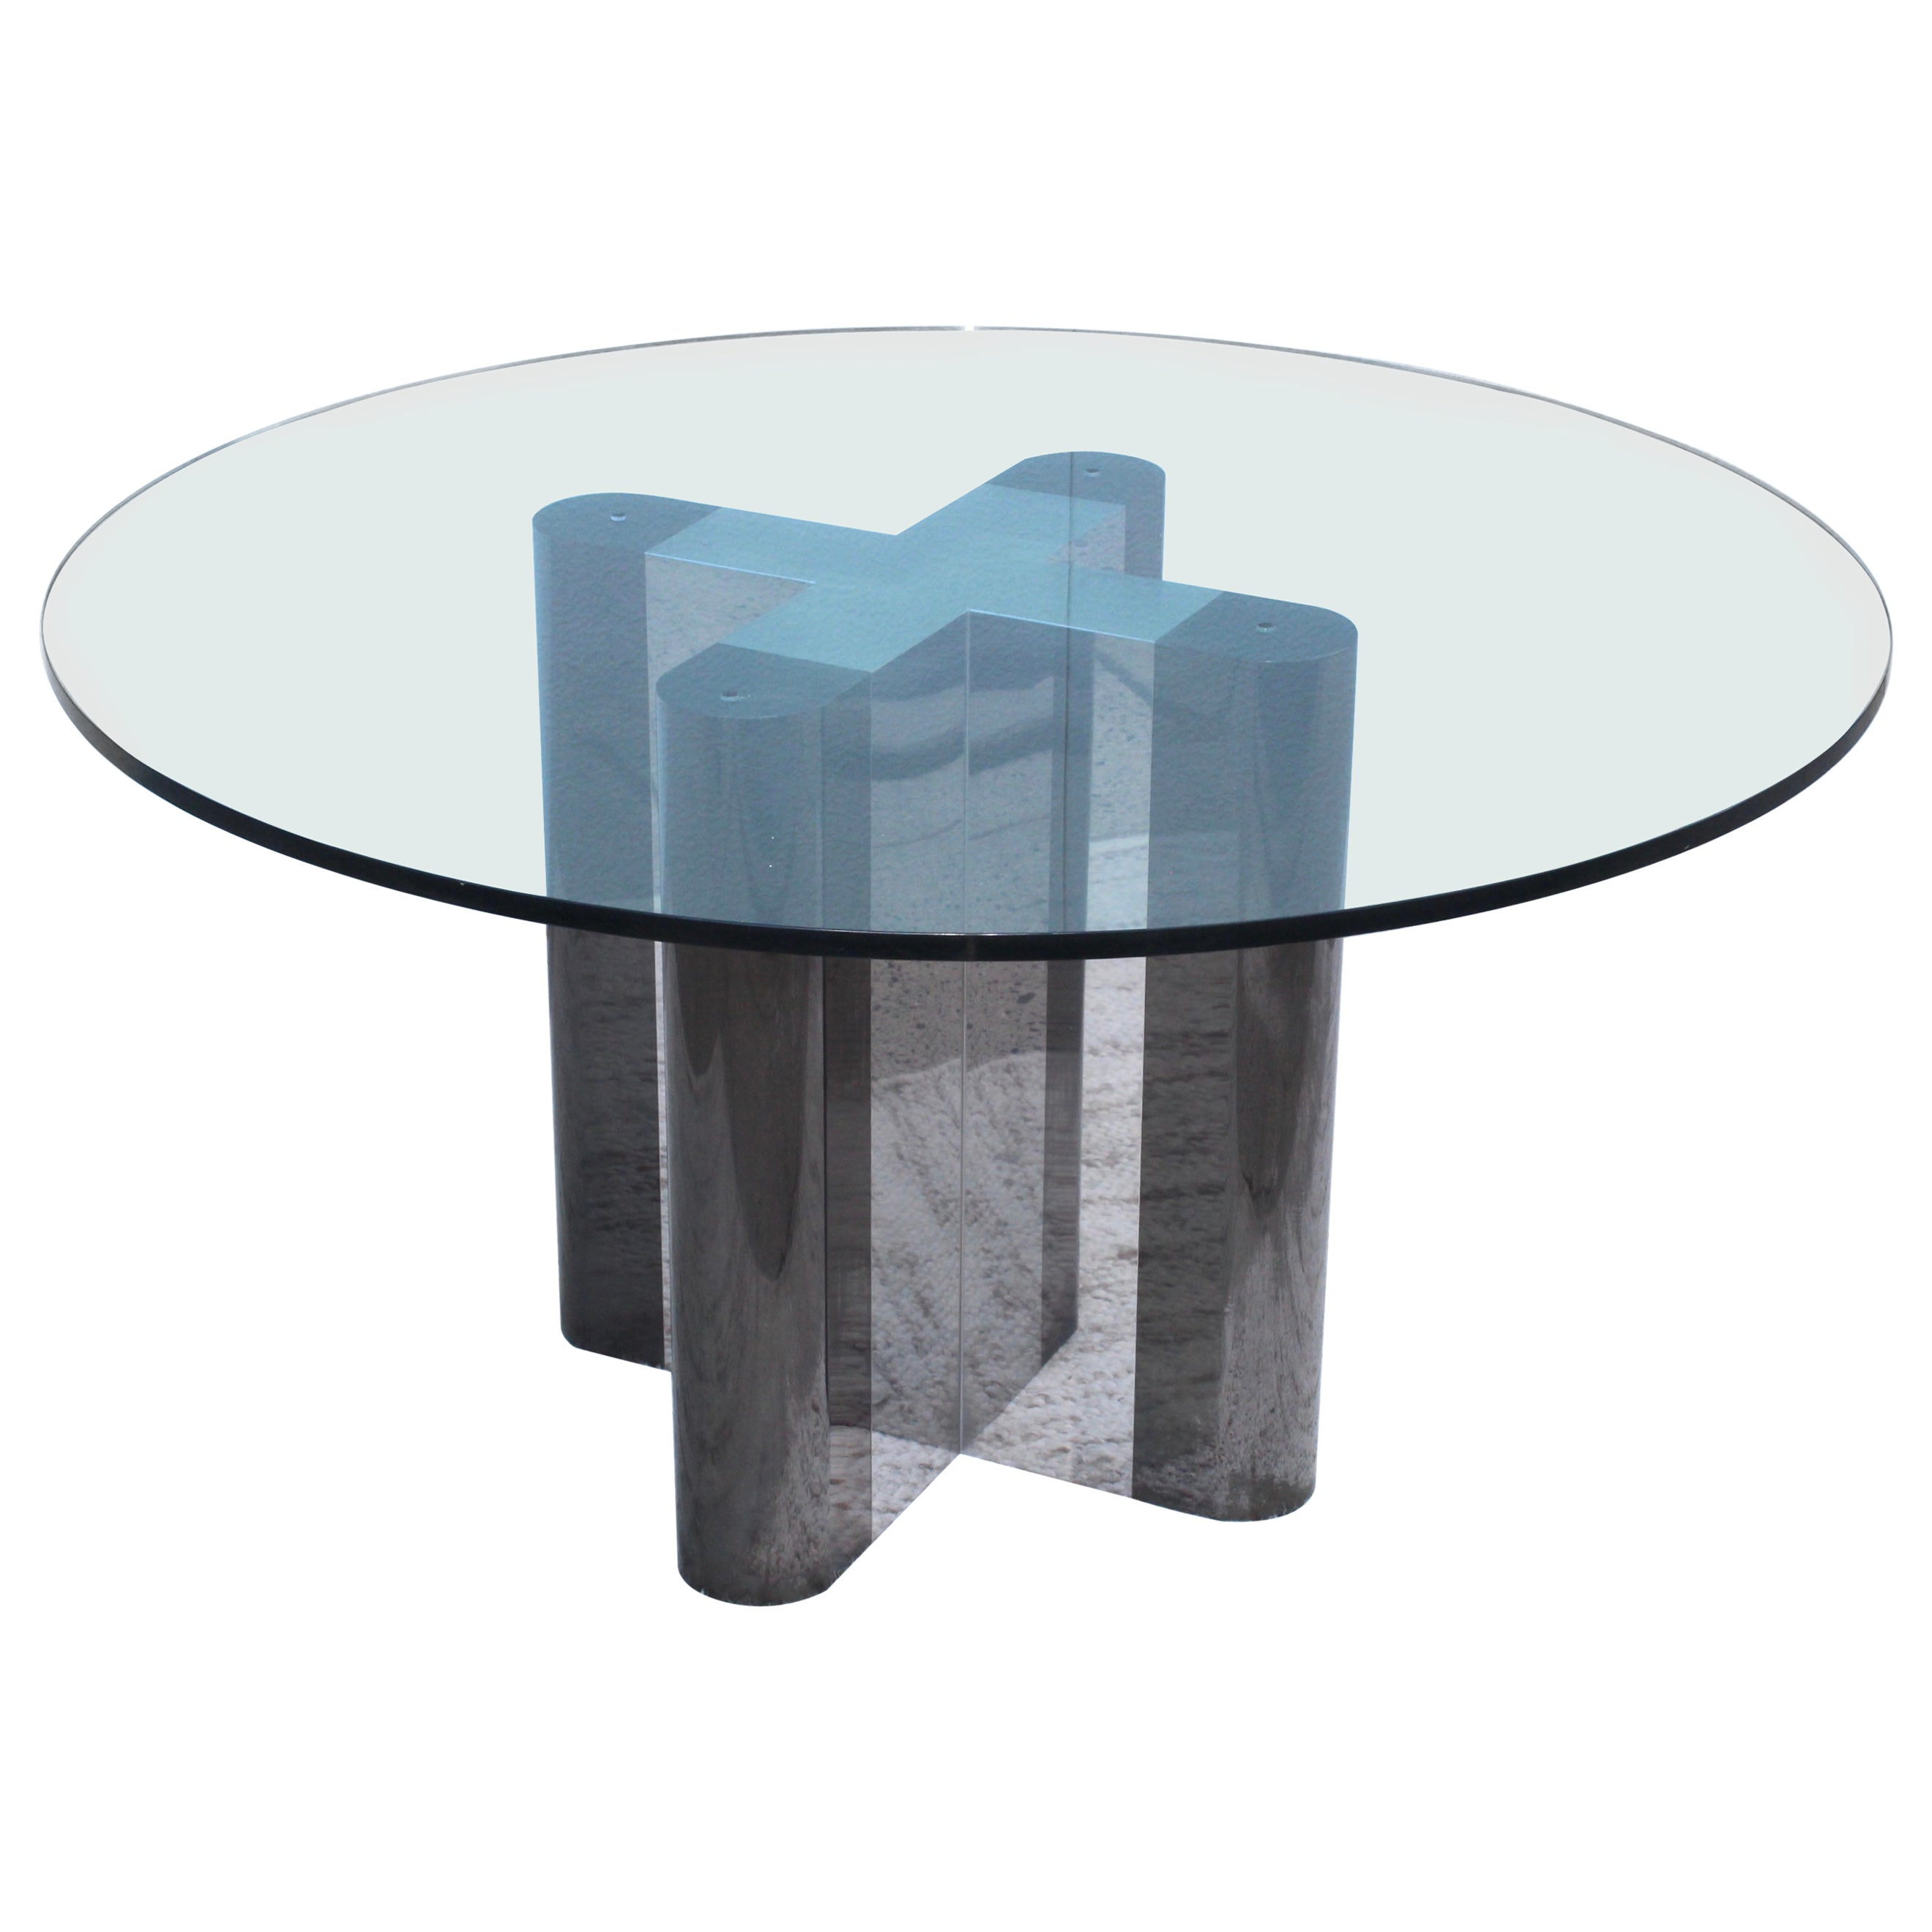 1970s Custom Made Chrome Dining Table with Glass Top